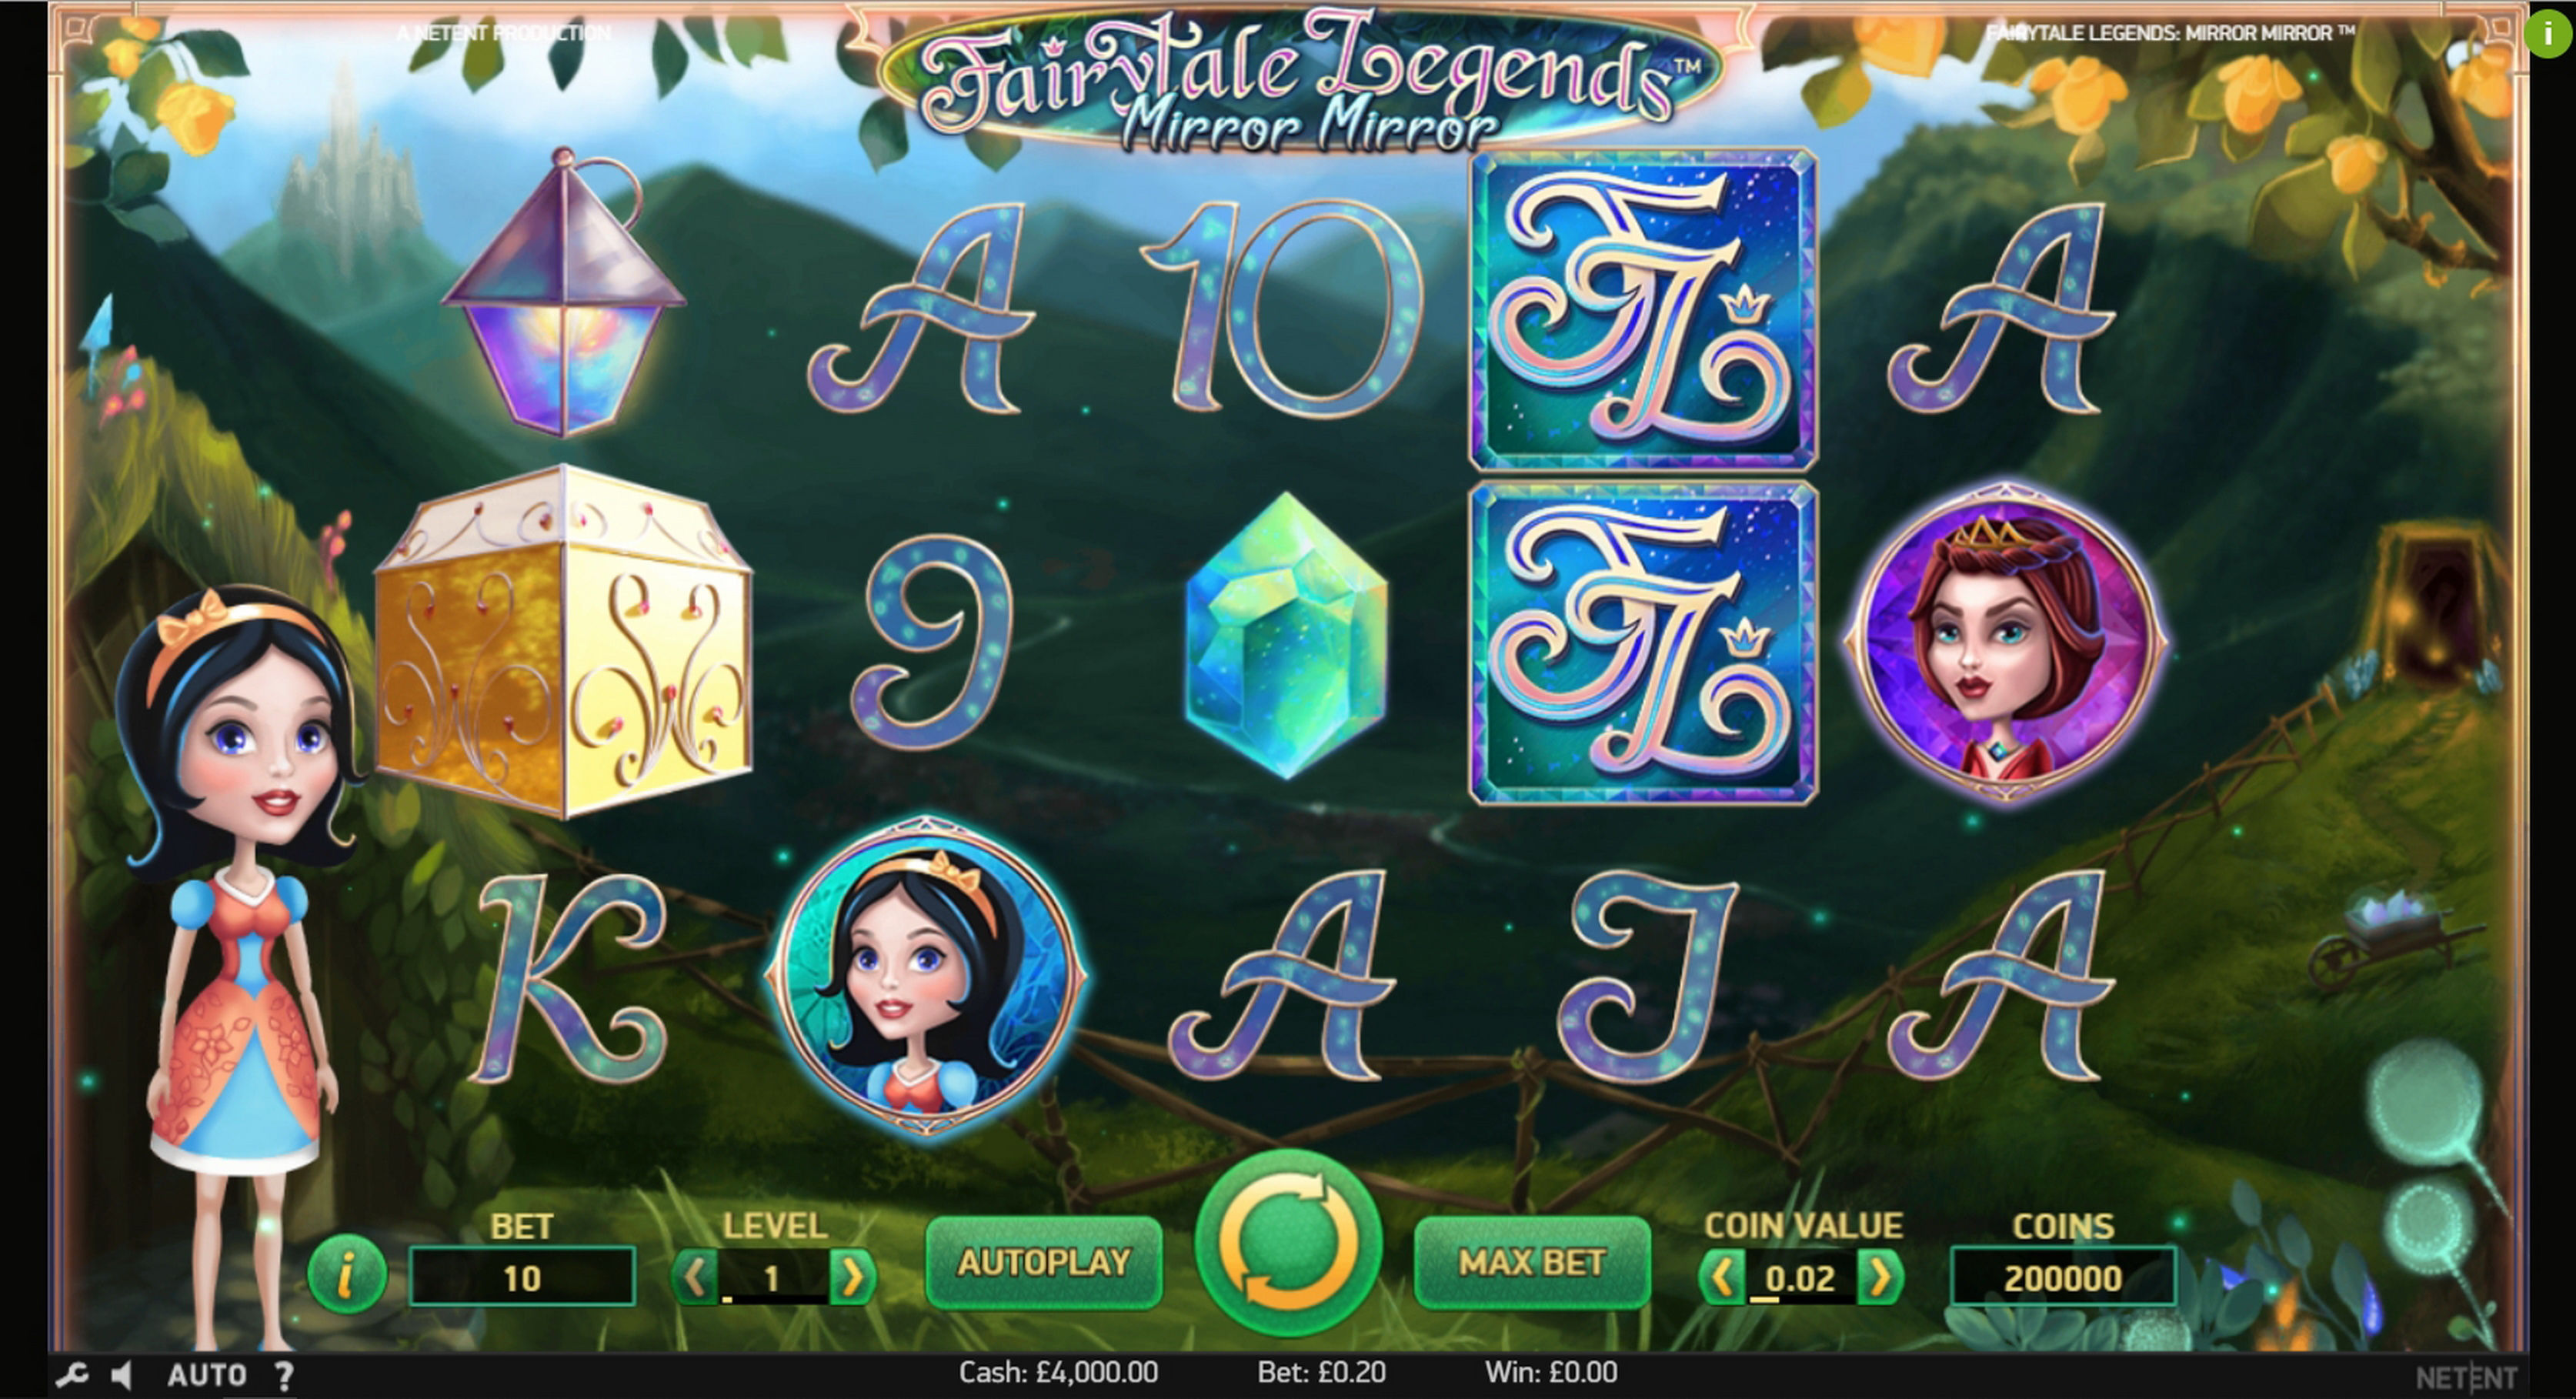 Reels in Fairytale Legends: Mirror Mirror (NetEnt) Slot Game by NetEnt